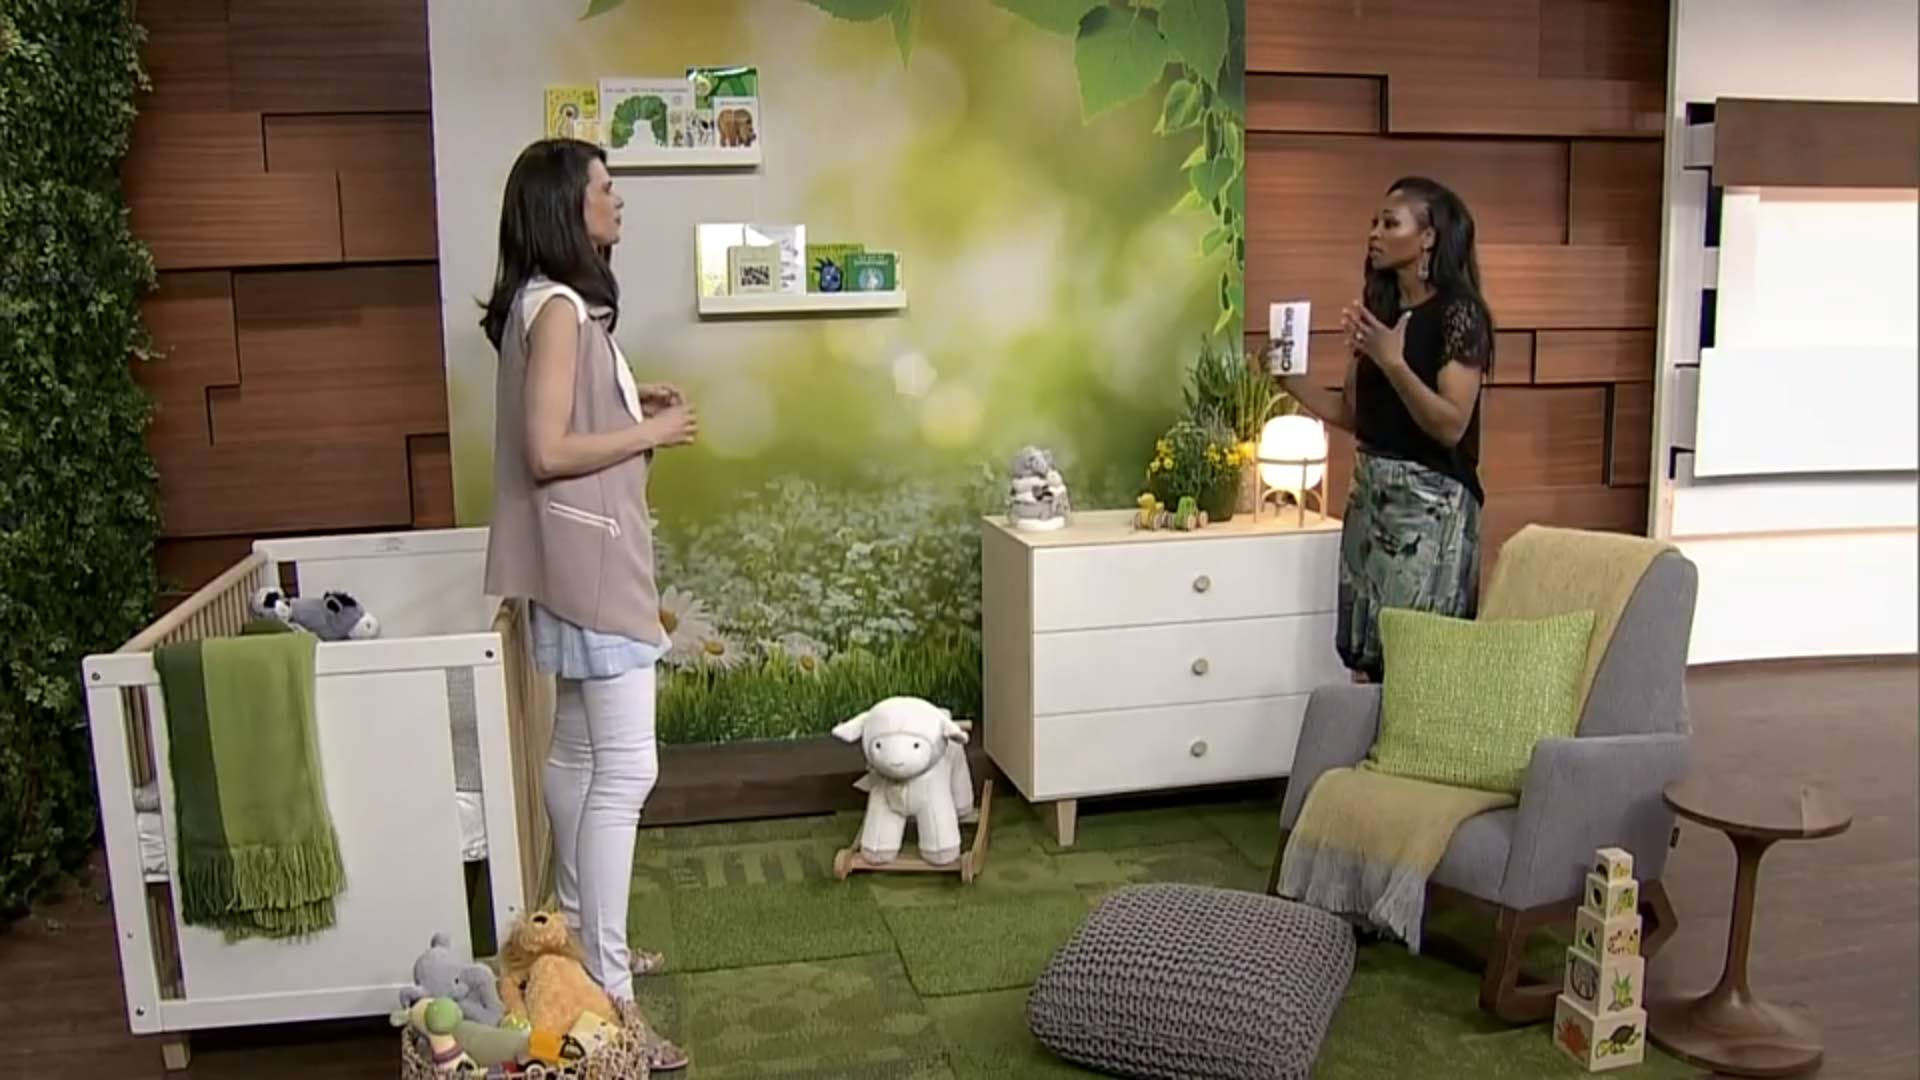 Celia and Tracy standing in the nursery and discussing the design elements on the set of Cityline TV.